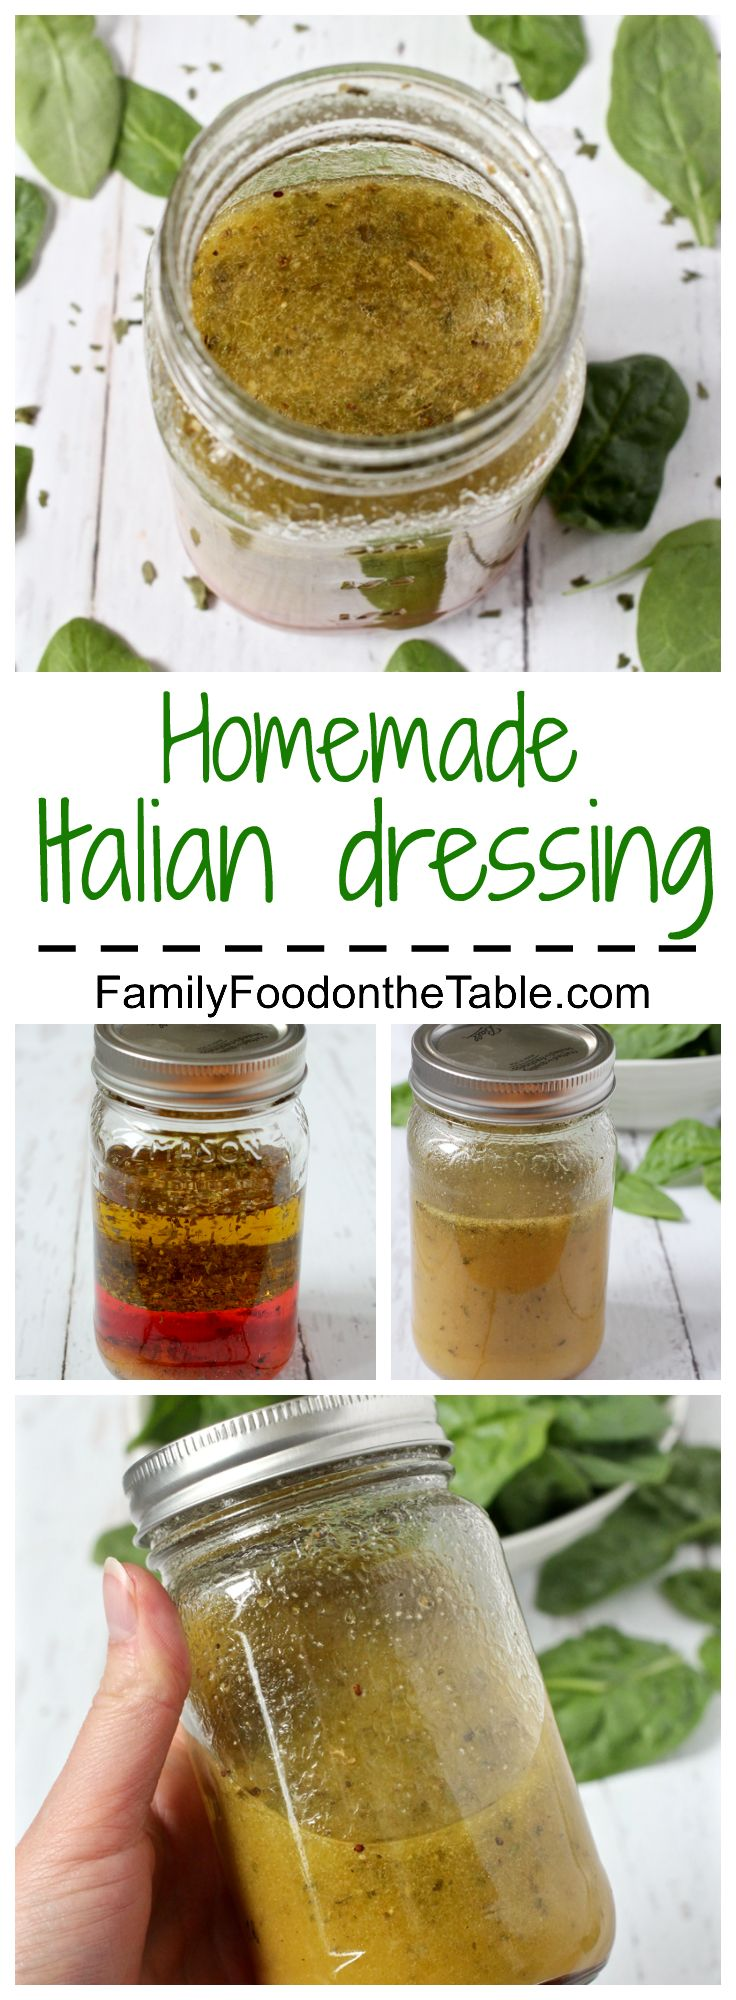 I add 1/2 tsp celery seed and 1/4 tsp red pepper to zest it up a bit! Homemade Italian dressing is as easy and measuring and shaking - so much healthier and tastier than store-bought! | FamilyFoodontheTable.com